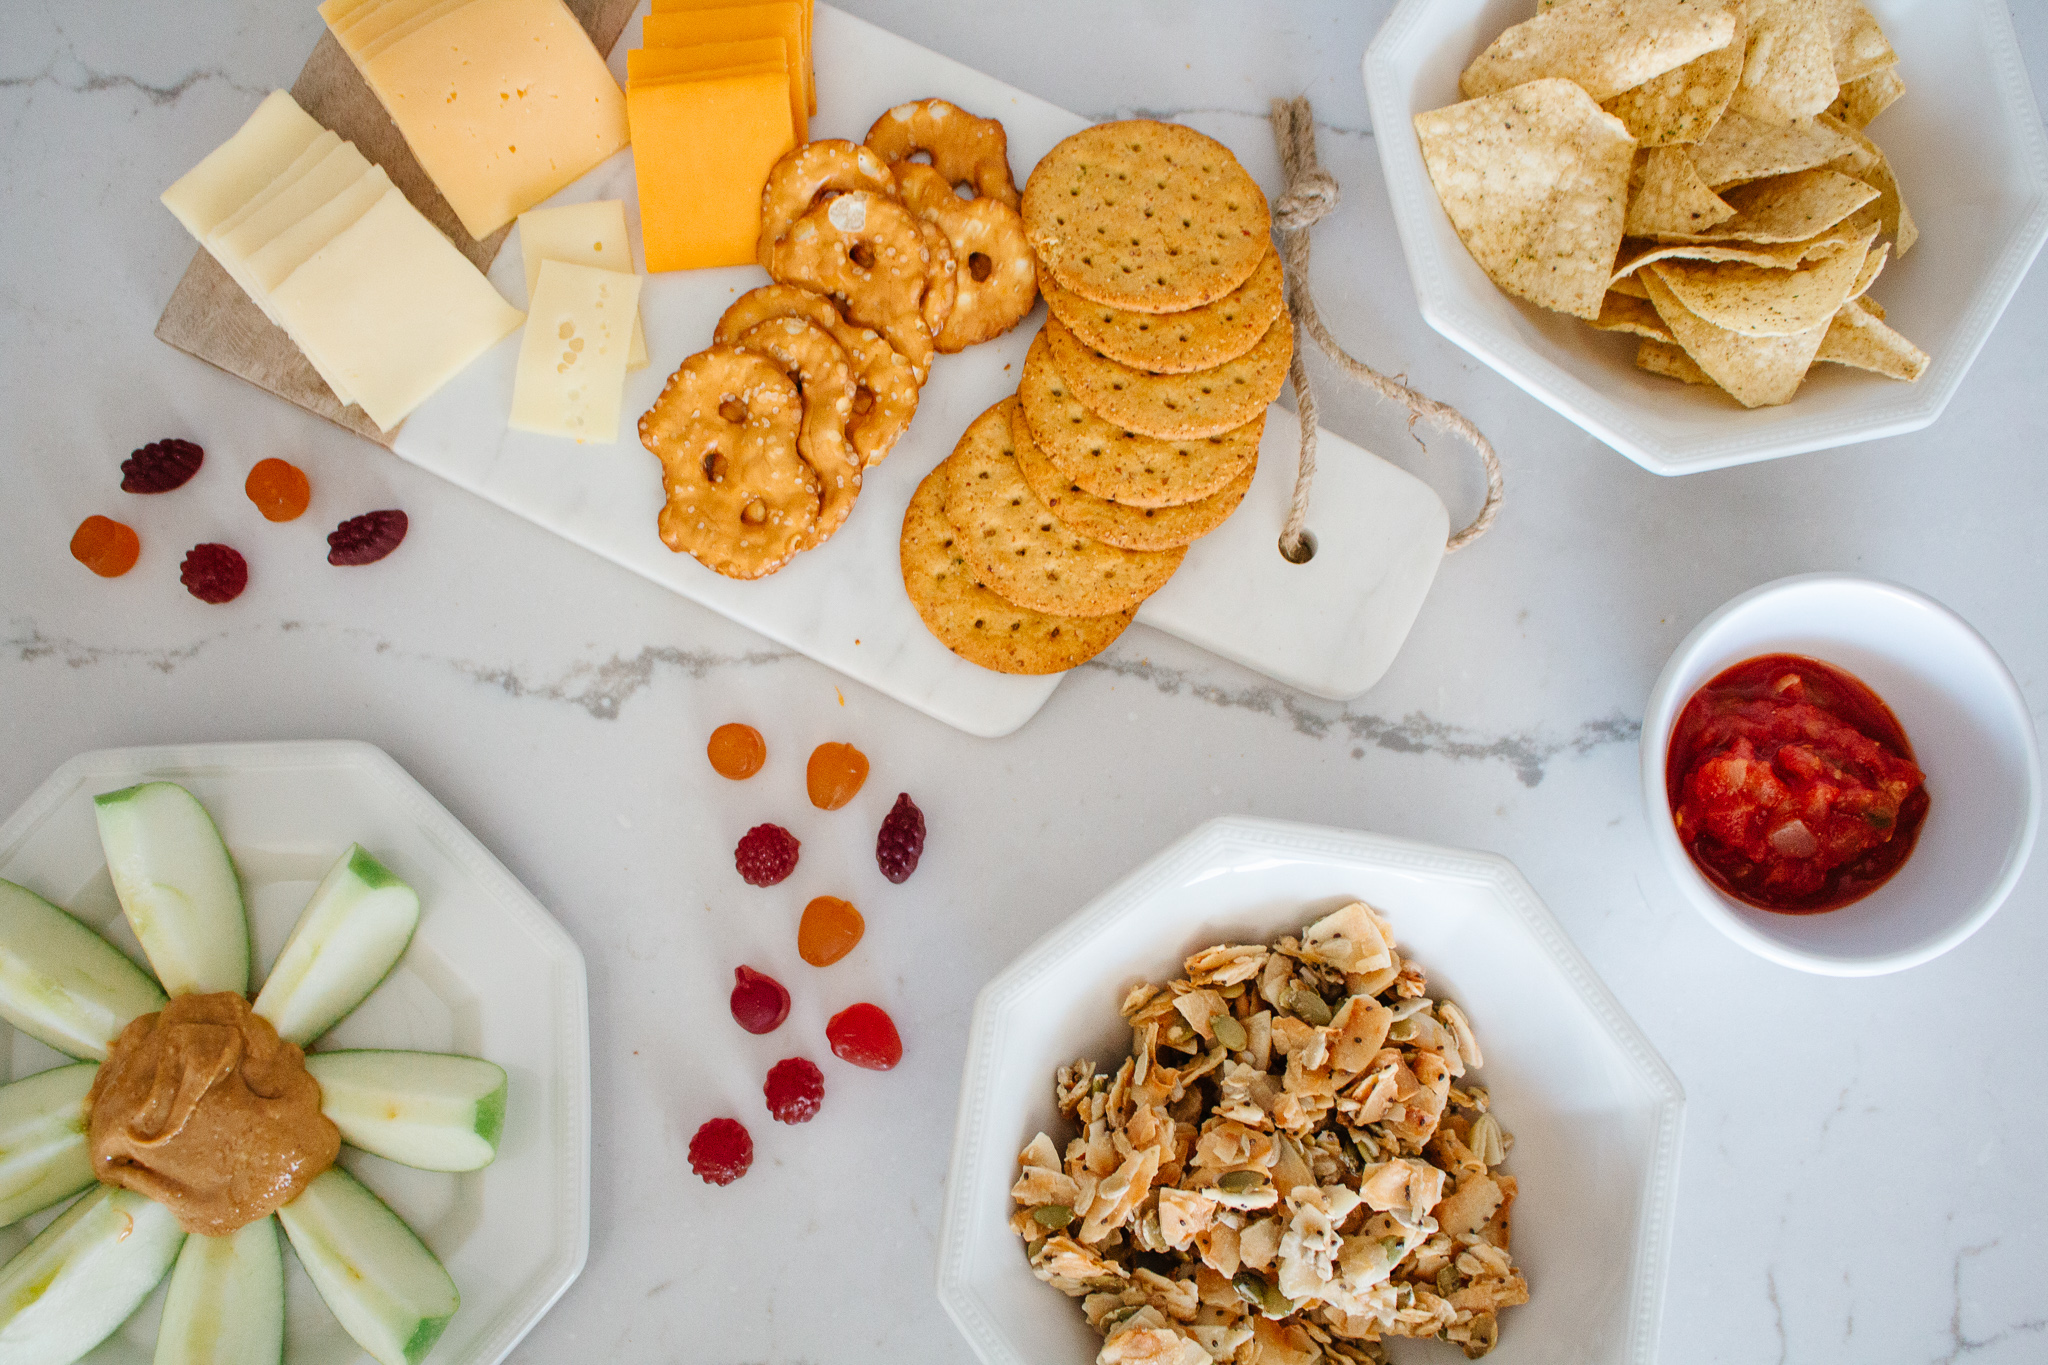 Healthy snacks from costco, cheese and crackers, apples and peanut butter, chips and salsa, and other quick treats.